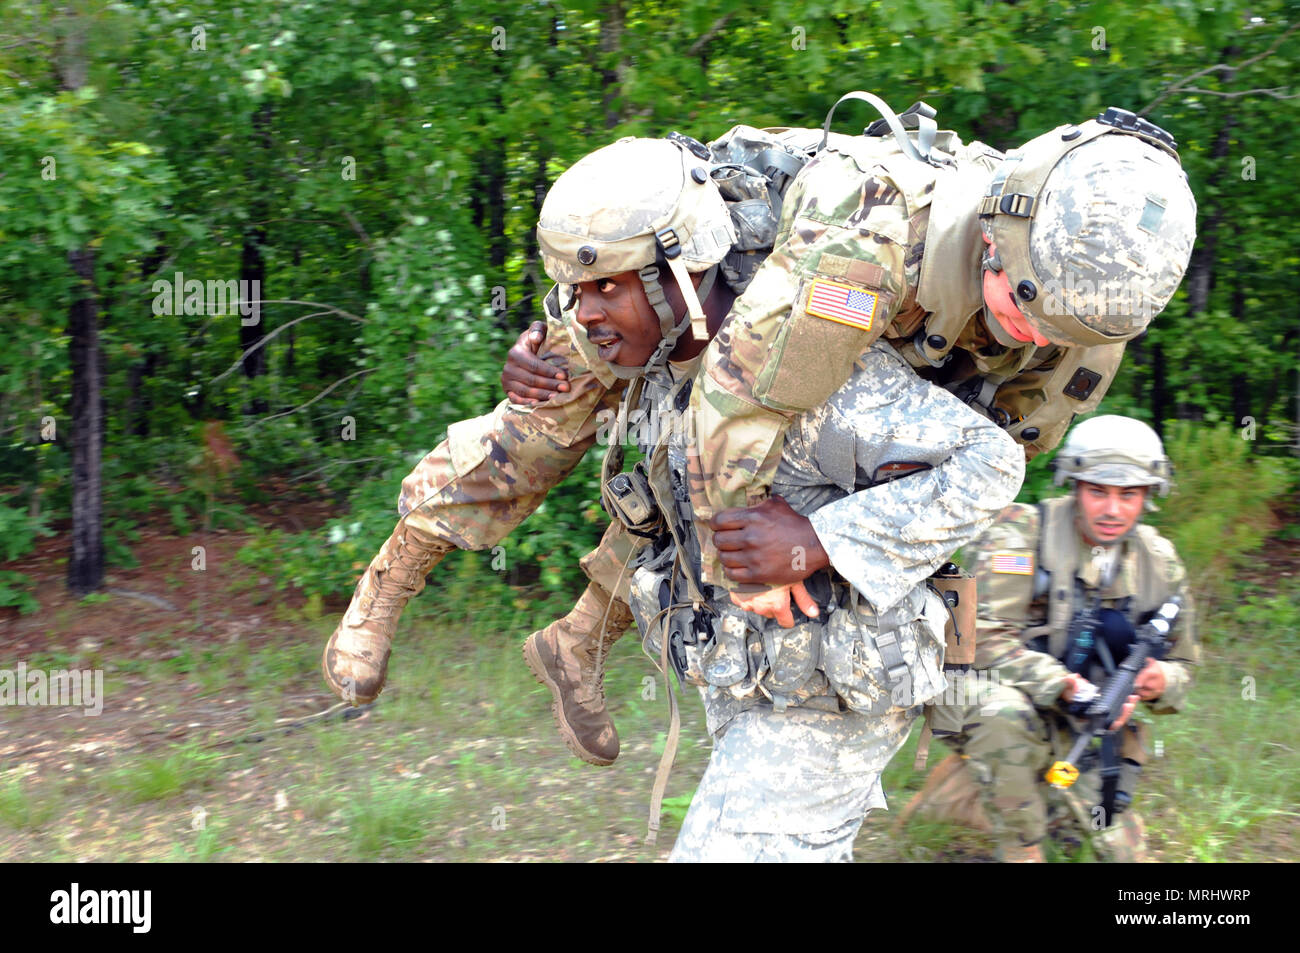 On 25 May 2017, during annual training at Fort Pickett Va., New Jersey Army National Guard Spc. Paul Daniels of the 250th Brigade Support Battalion fireman carries a fellow Soldier during a casualty evacuation exercise while Spc. Edgar Sepulveda provides overwatch. More than 3,000 New Jersey Army National Guard Soldiers - more than half of the combat strength of the force - is participating in the eXportable Combat Training Capability (XCTC) rotation from May 20 through June 9. (New Jersey Army National Guard photo by Sgt. 1st Class Joe Donnelly/RELEASED) - Stock Image